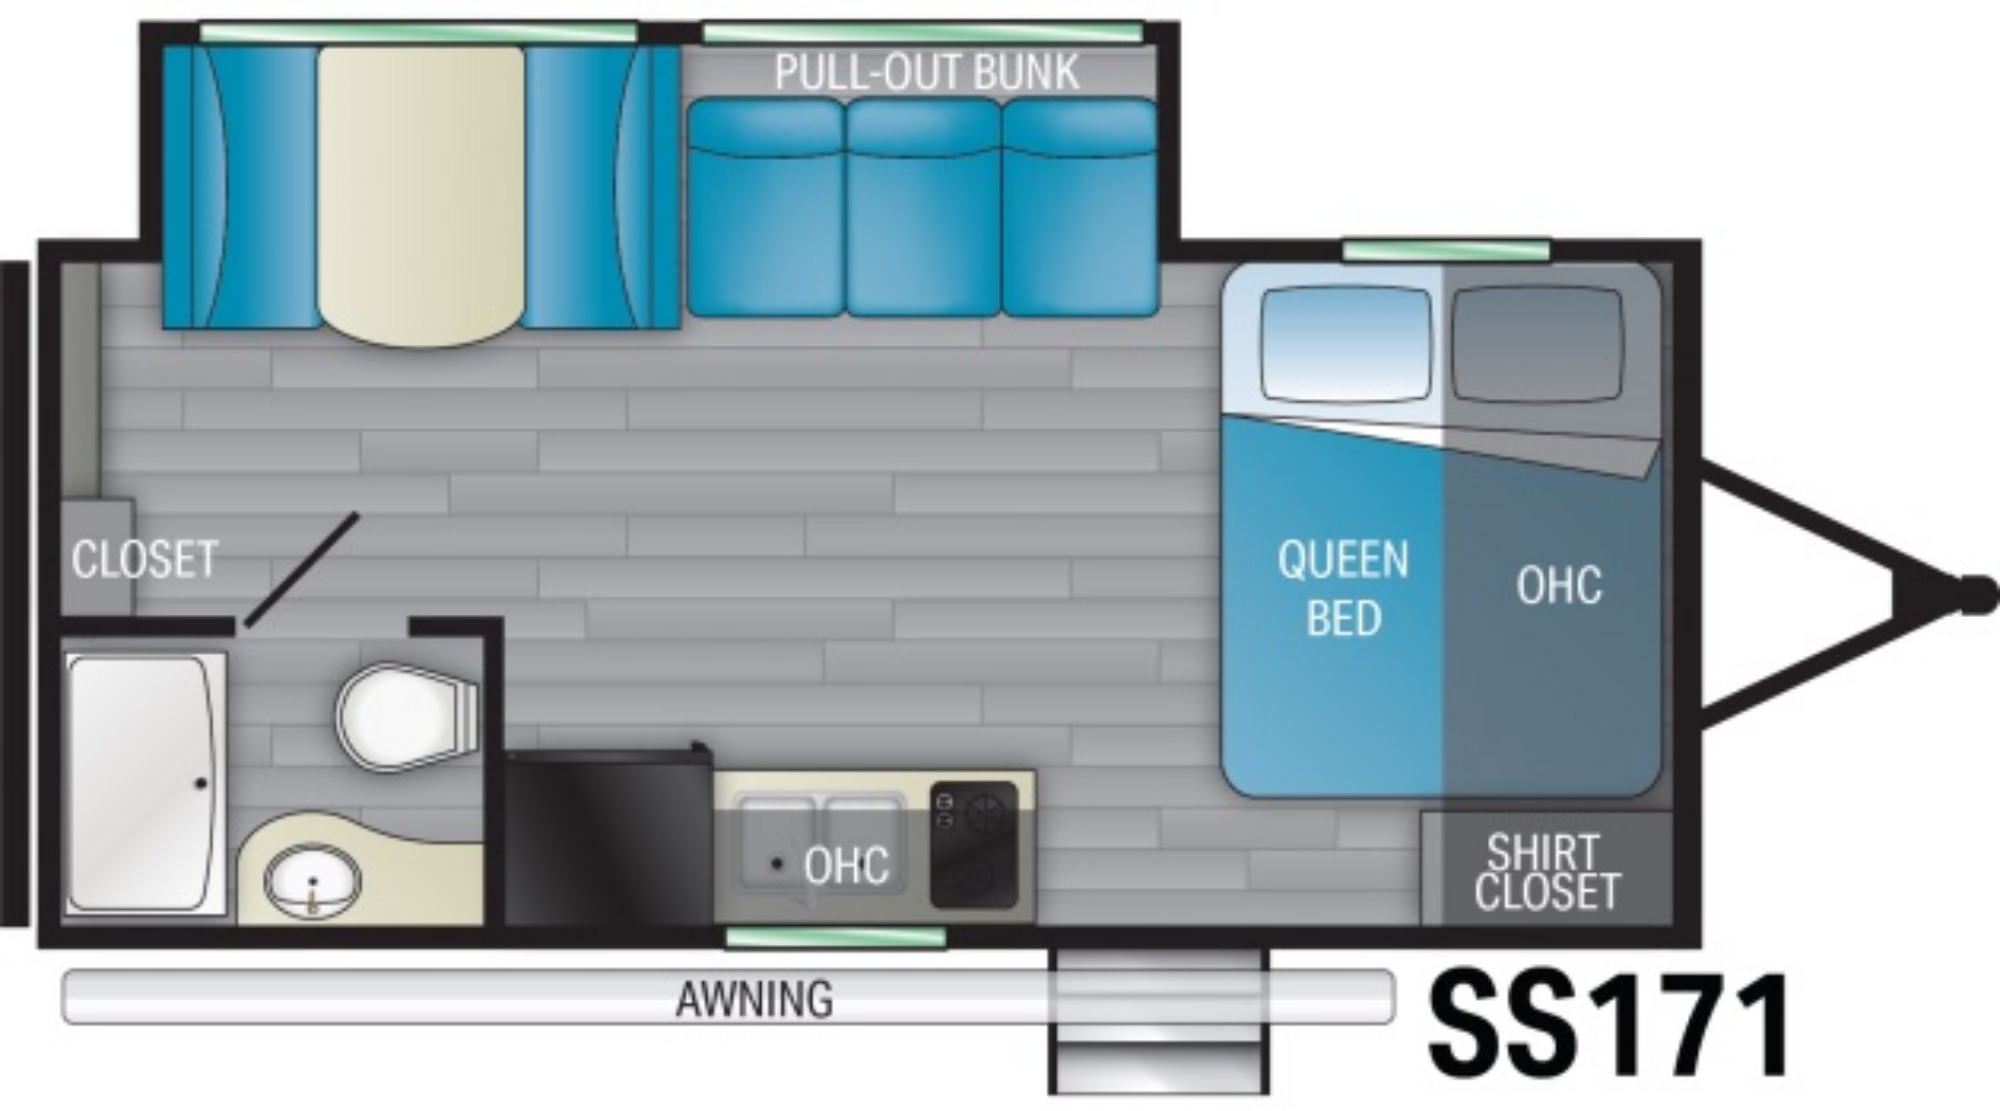 View Floor Plan for 2021 HEARTLAND PIONEER SS171